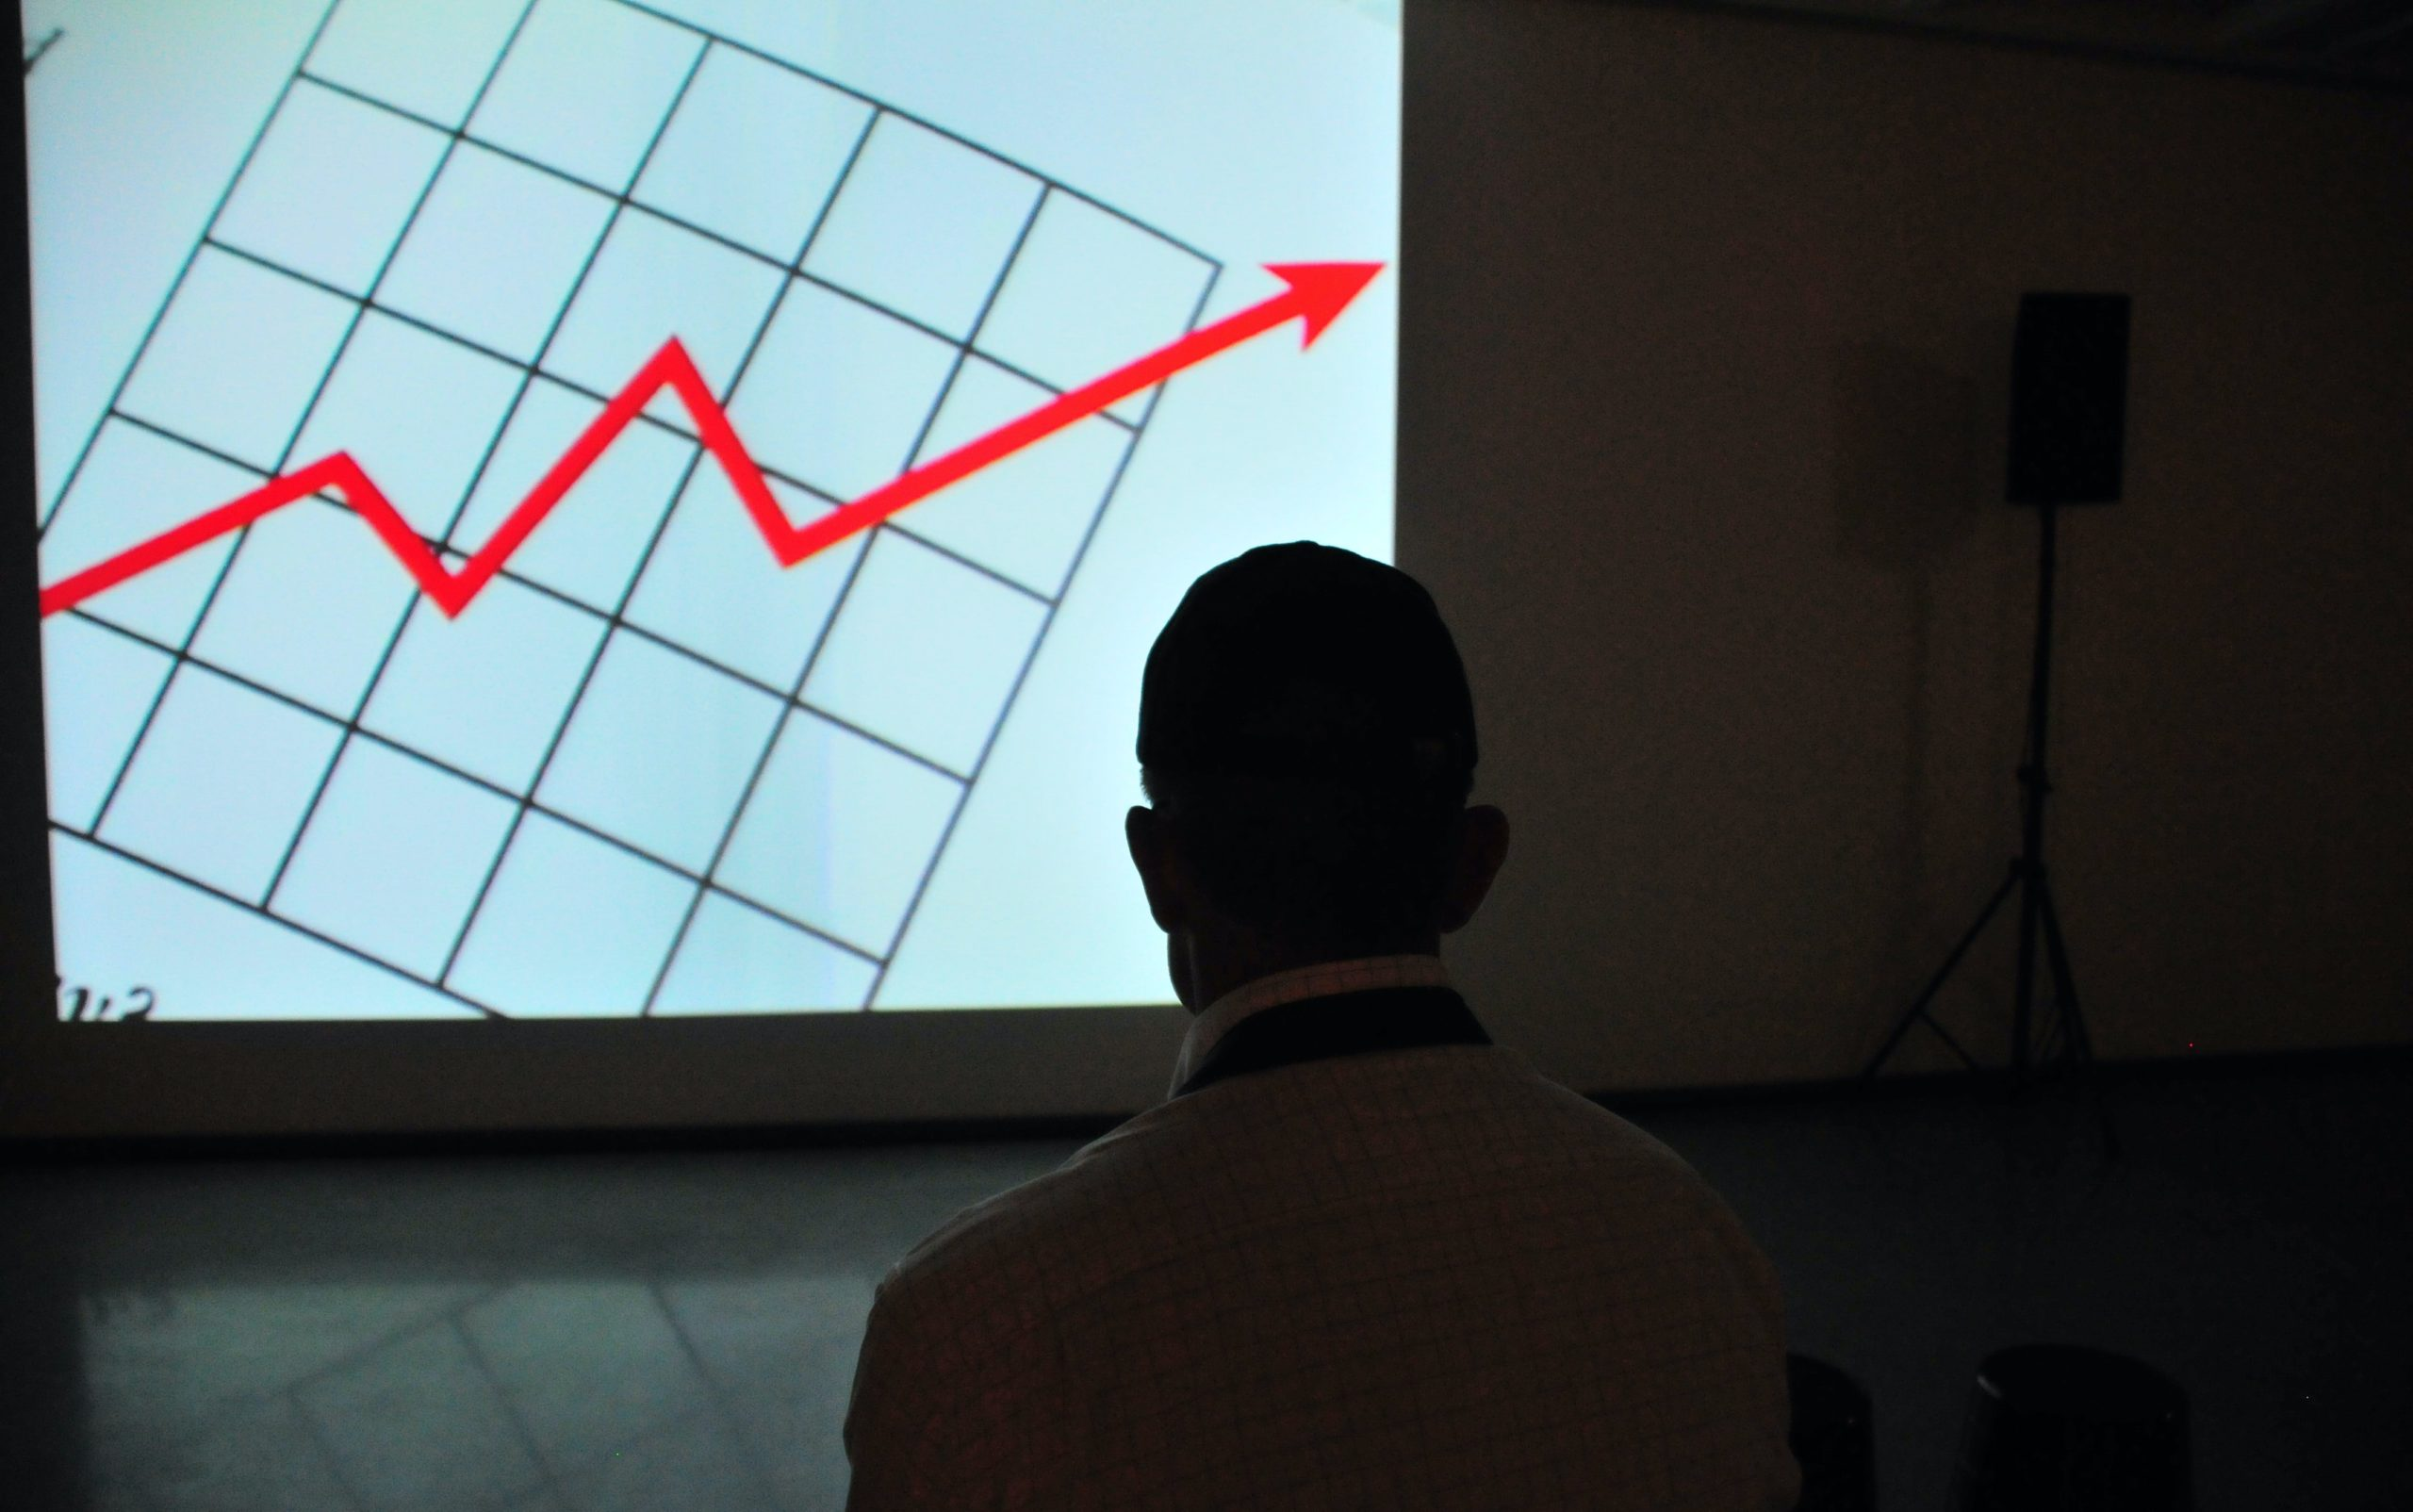 Man looking at power point presentation of a graph that shows an increasing trend in red